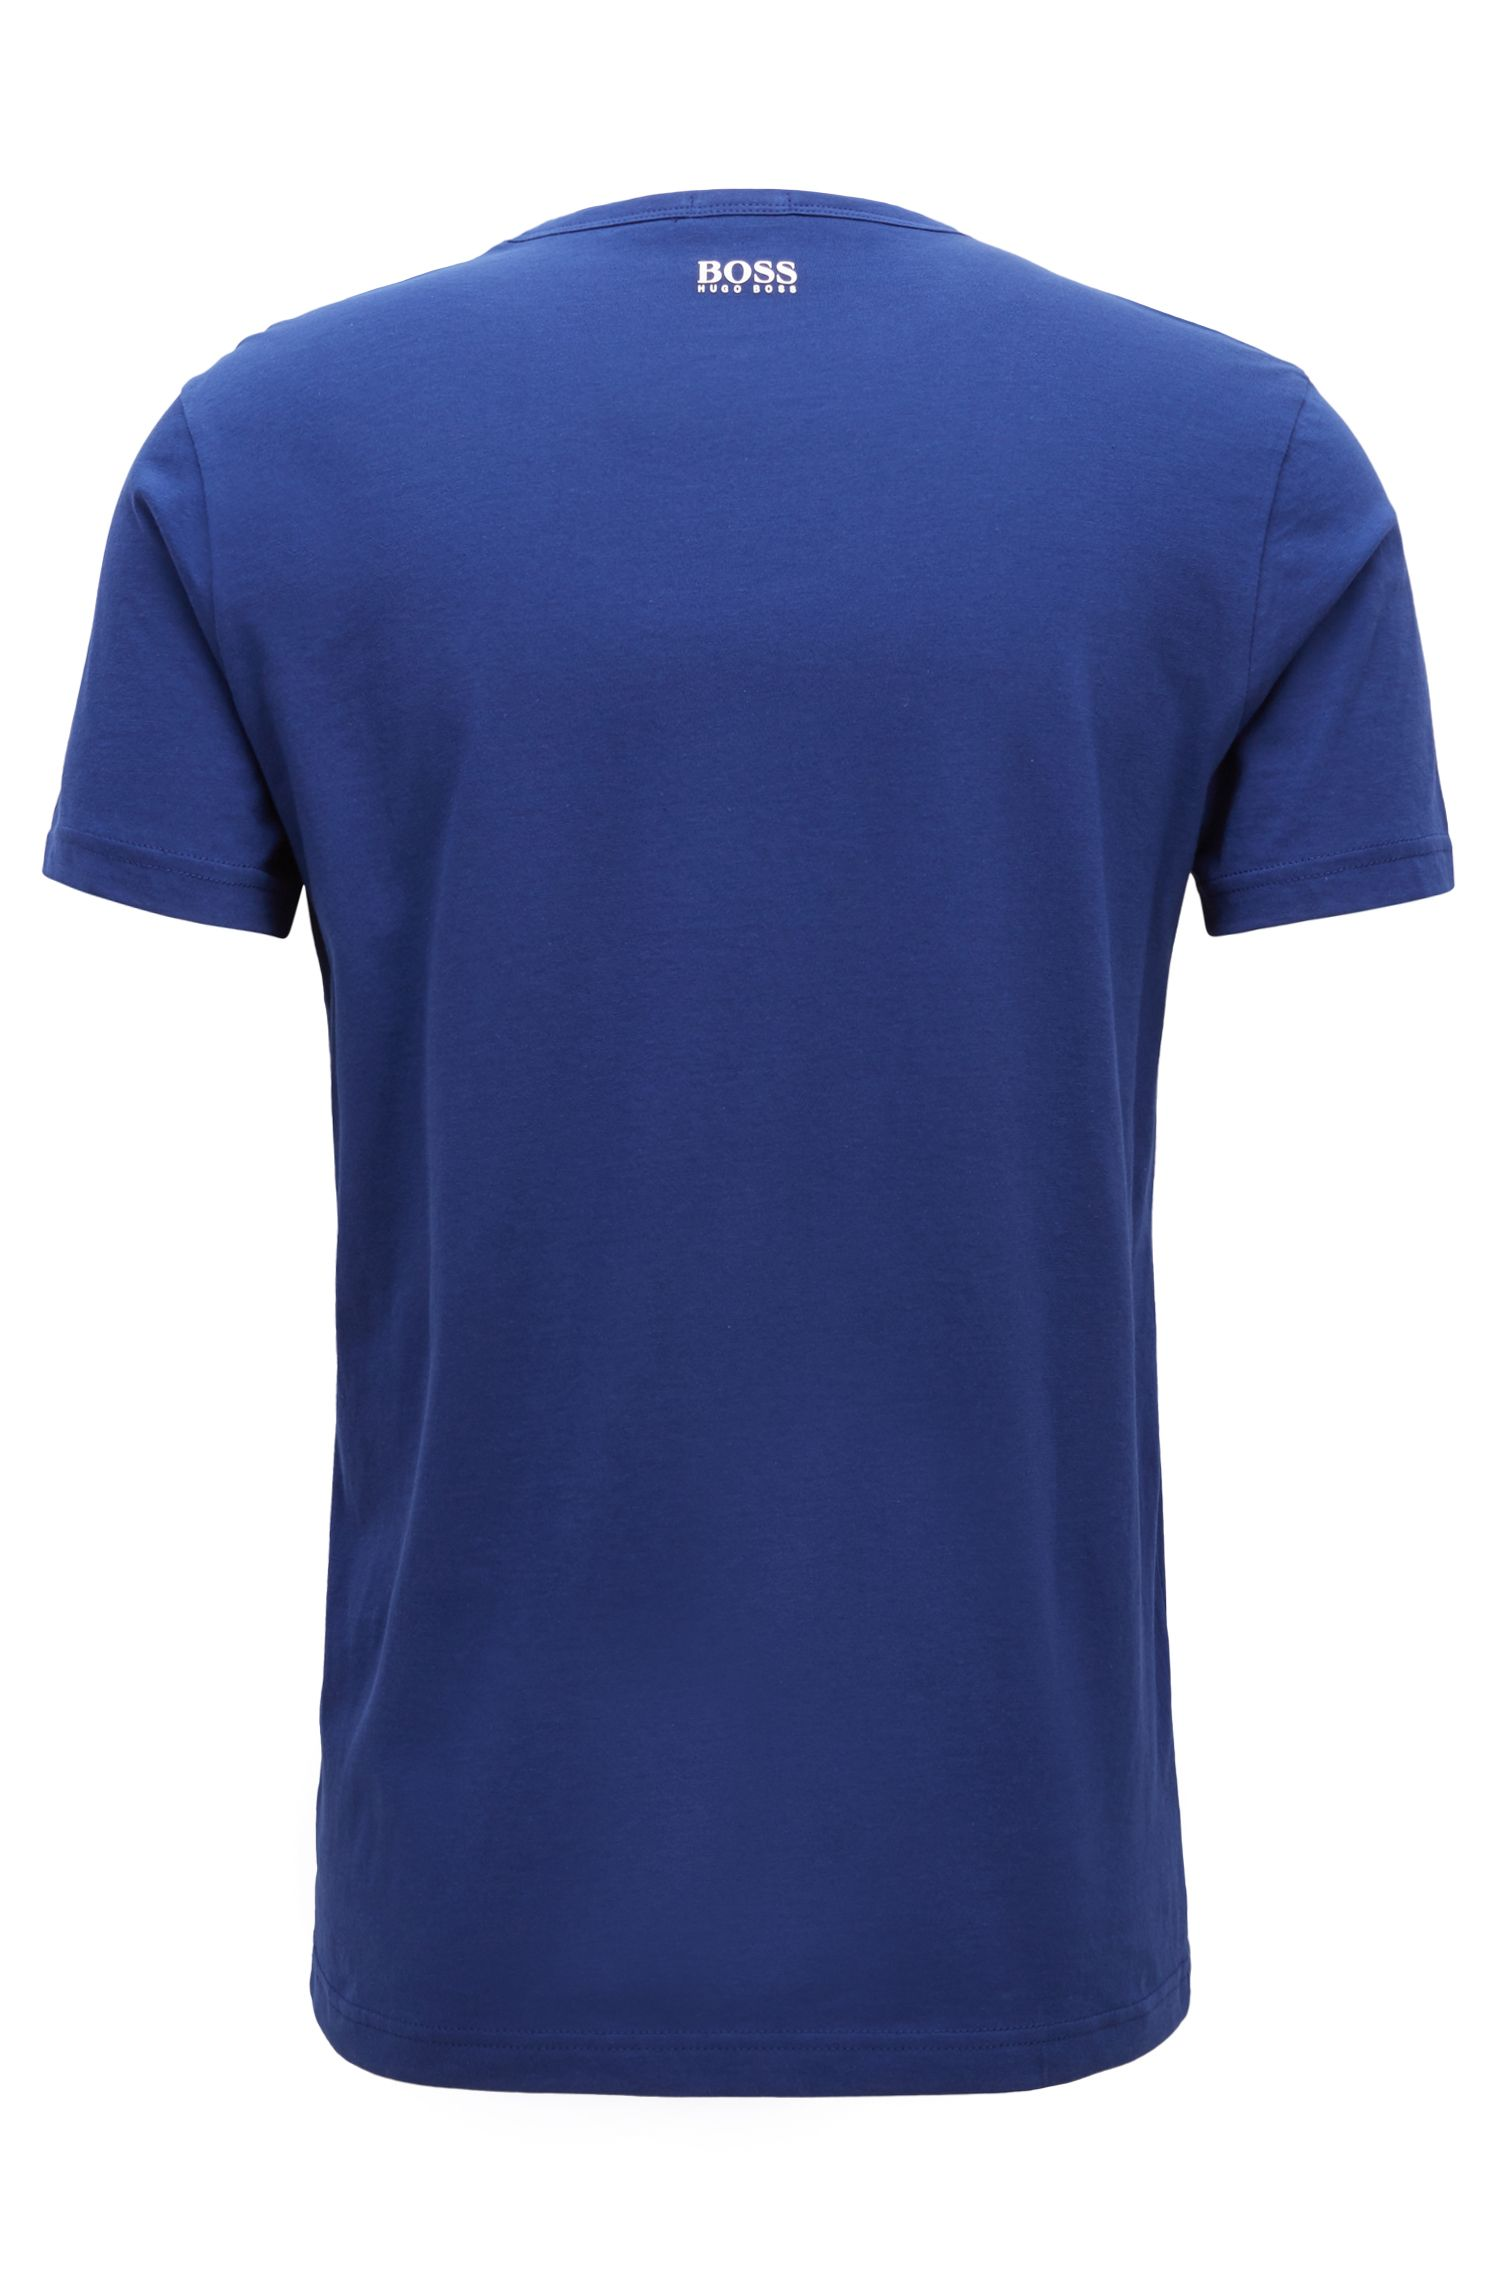 Short-sleeved T-shirt in cotton with graphic logo print, Dark Blue